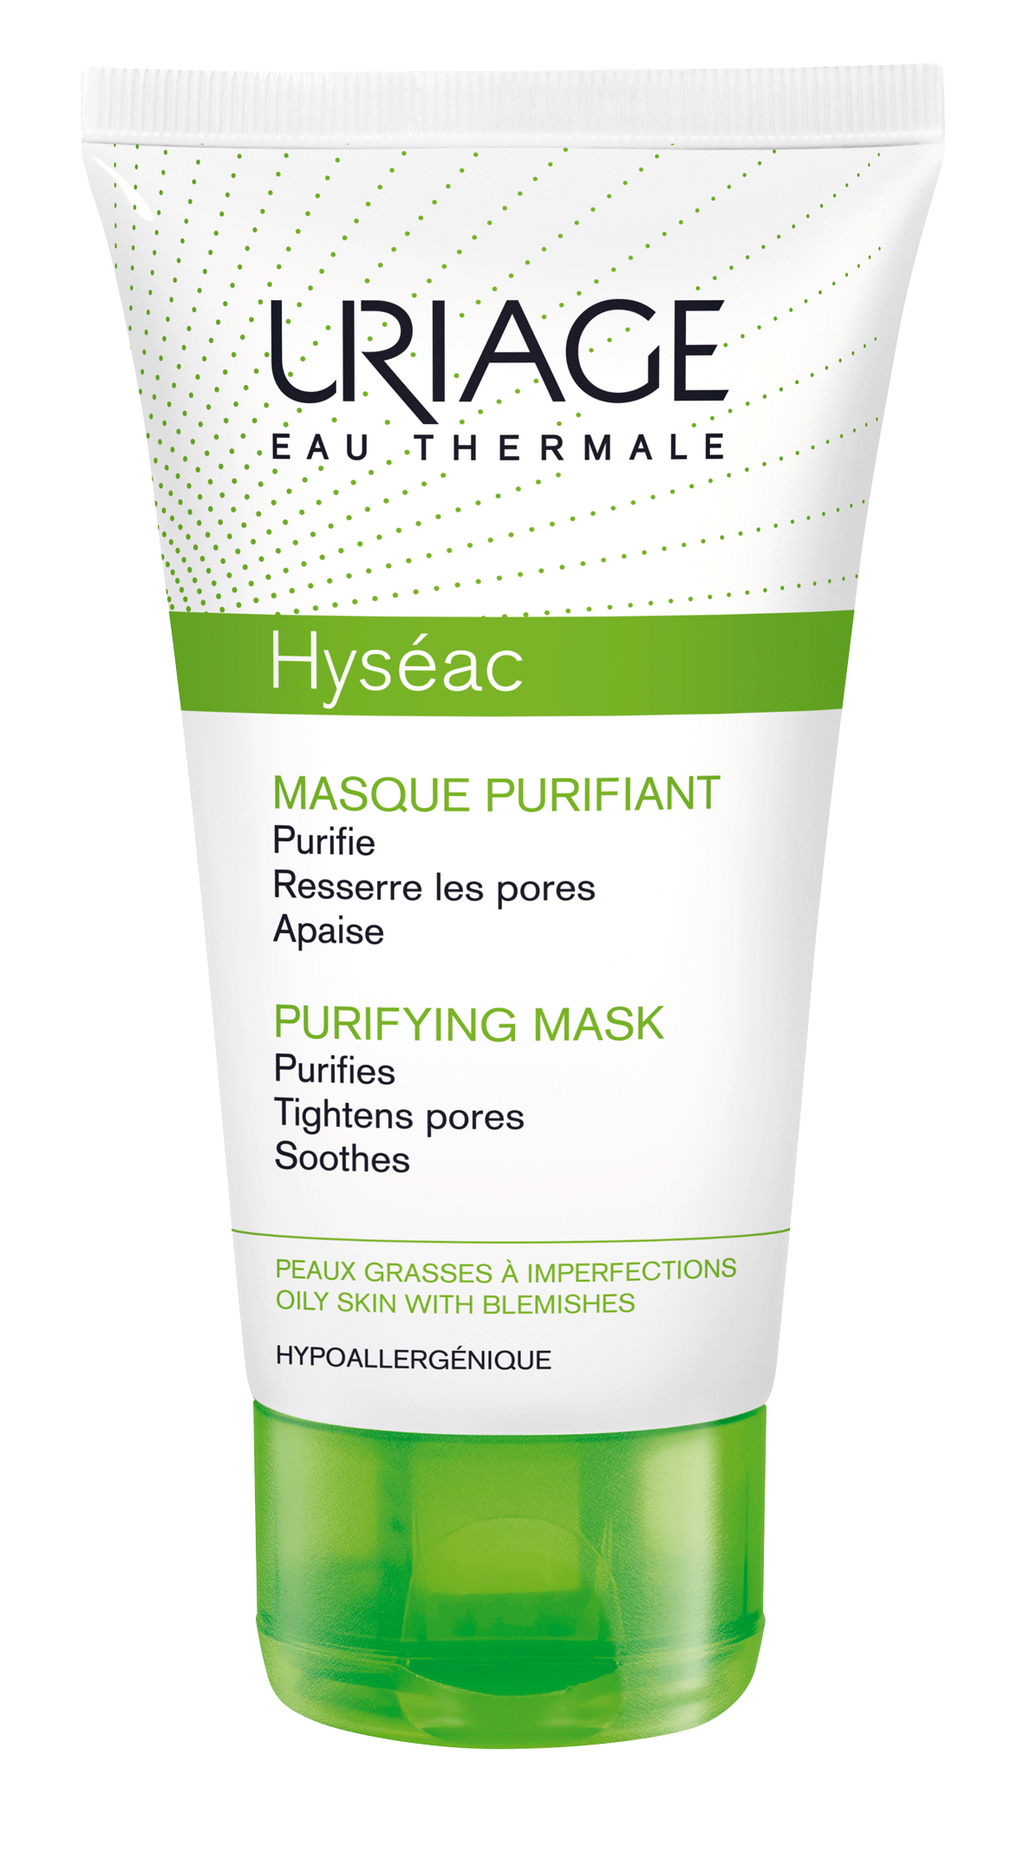 uriage-hyseac-purifying-mask-cosmetics-online-ireland